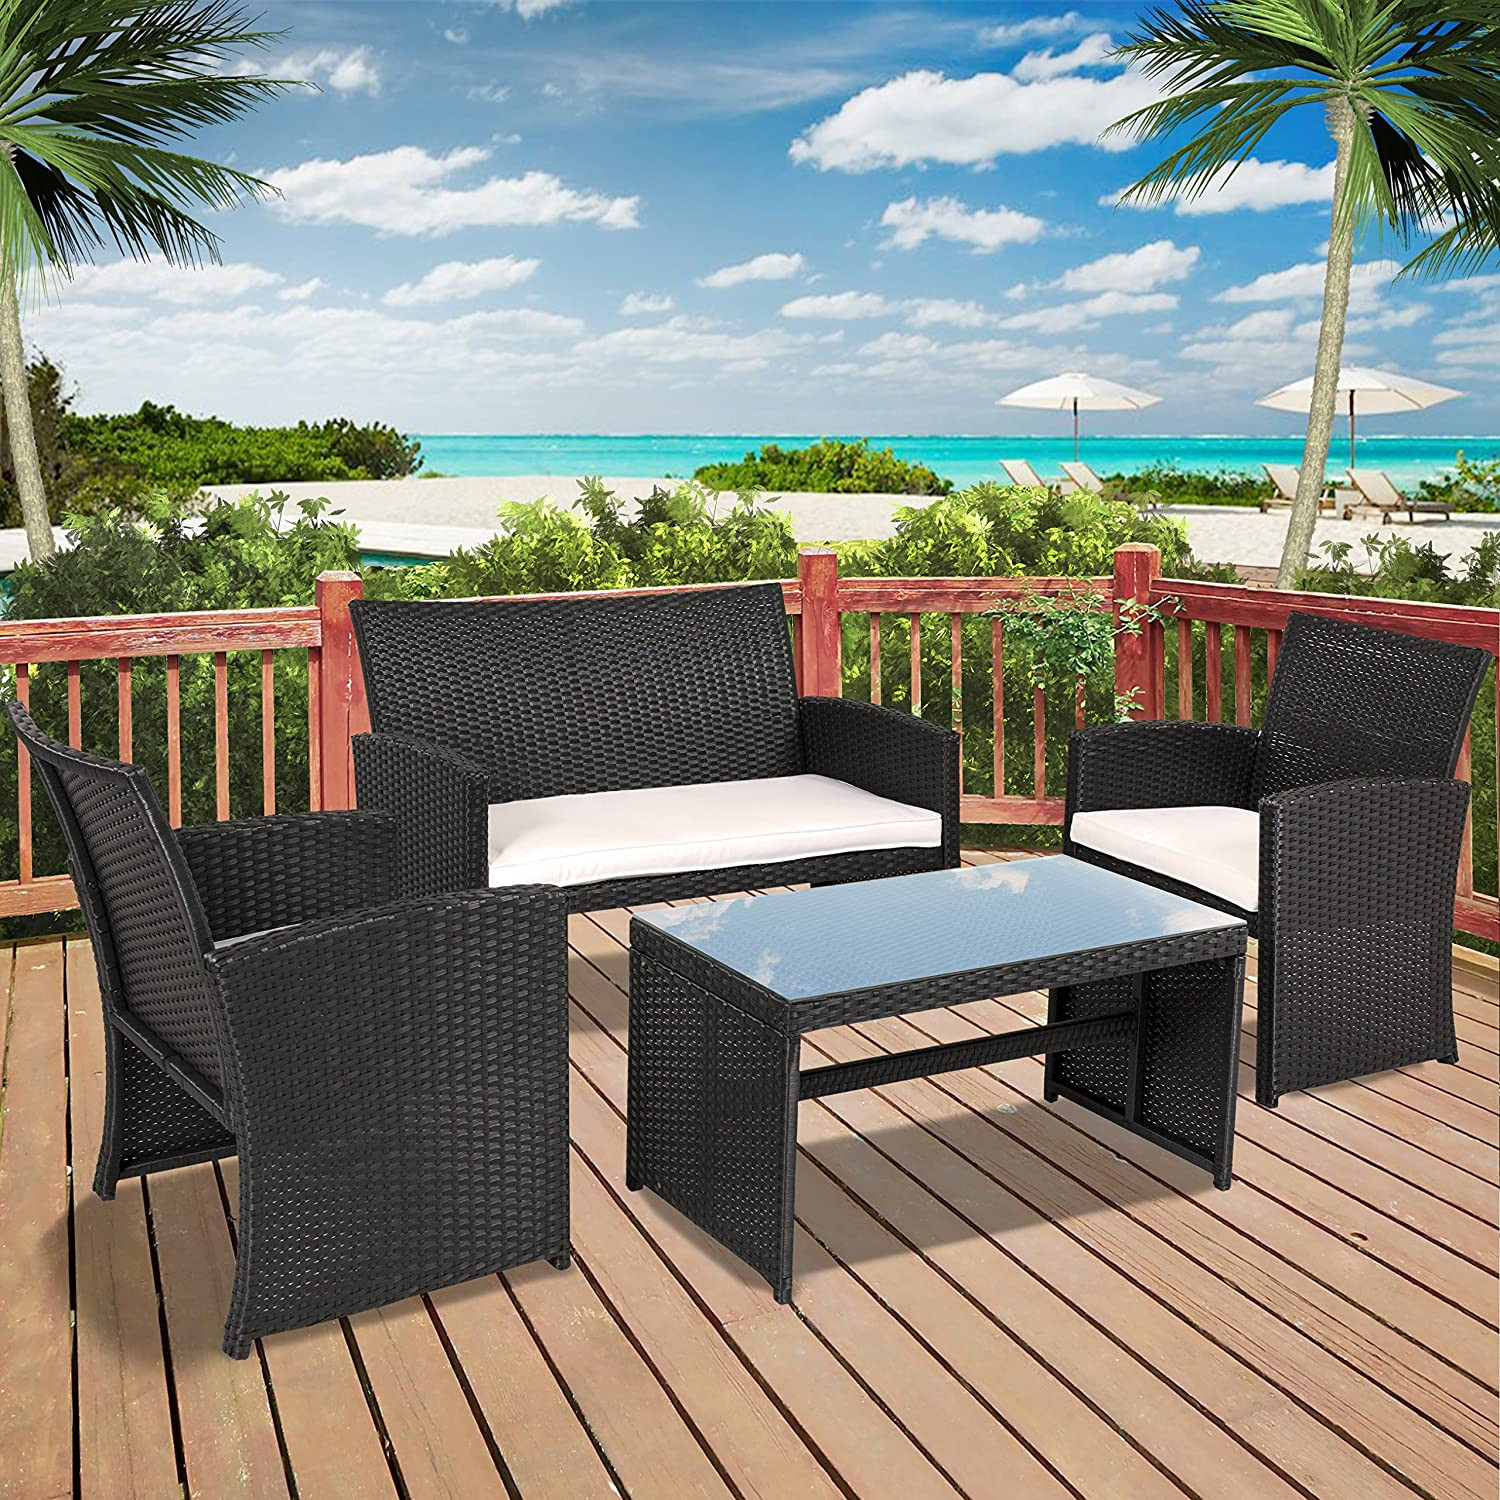 Amazon Best Choice Products Outdoor Garden Patio 4pc